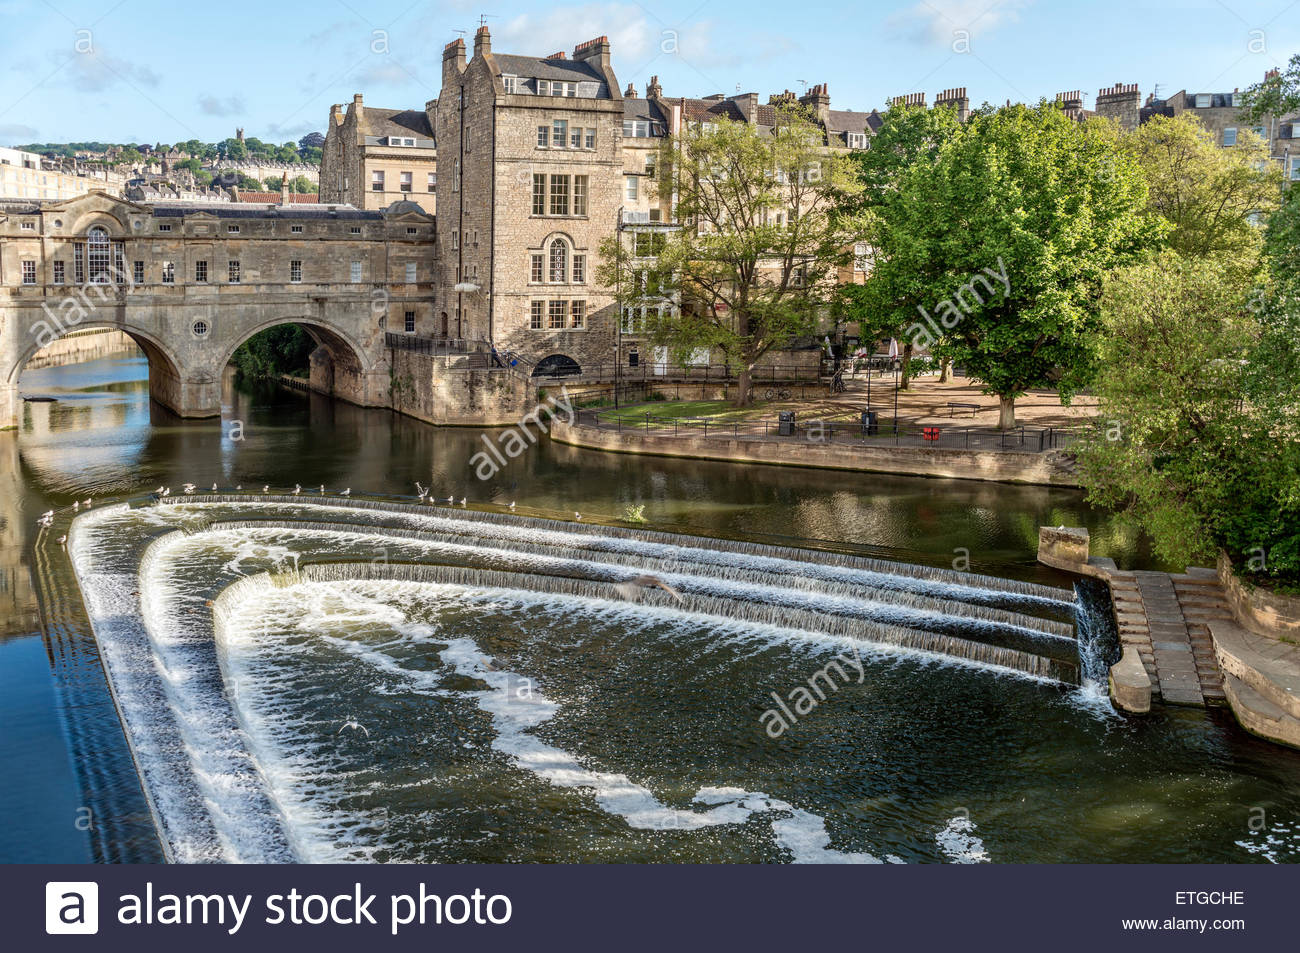 Pulteney Bridge across the River Avon seen from the Parade Gardens, Bath, Somerset, England | Pulteney Bridge ueber - Stock Image